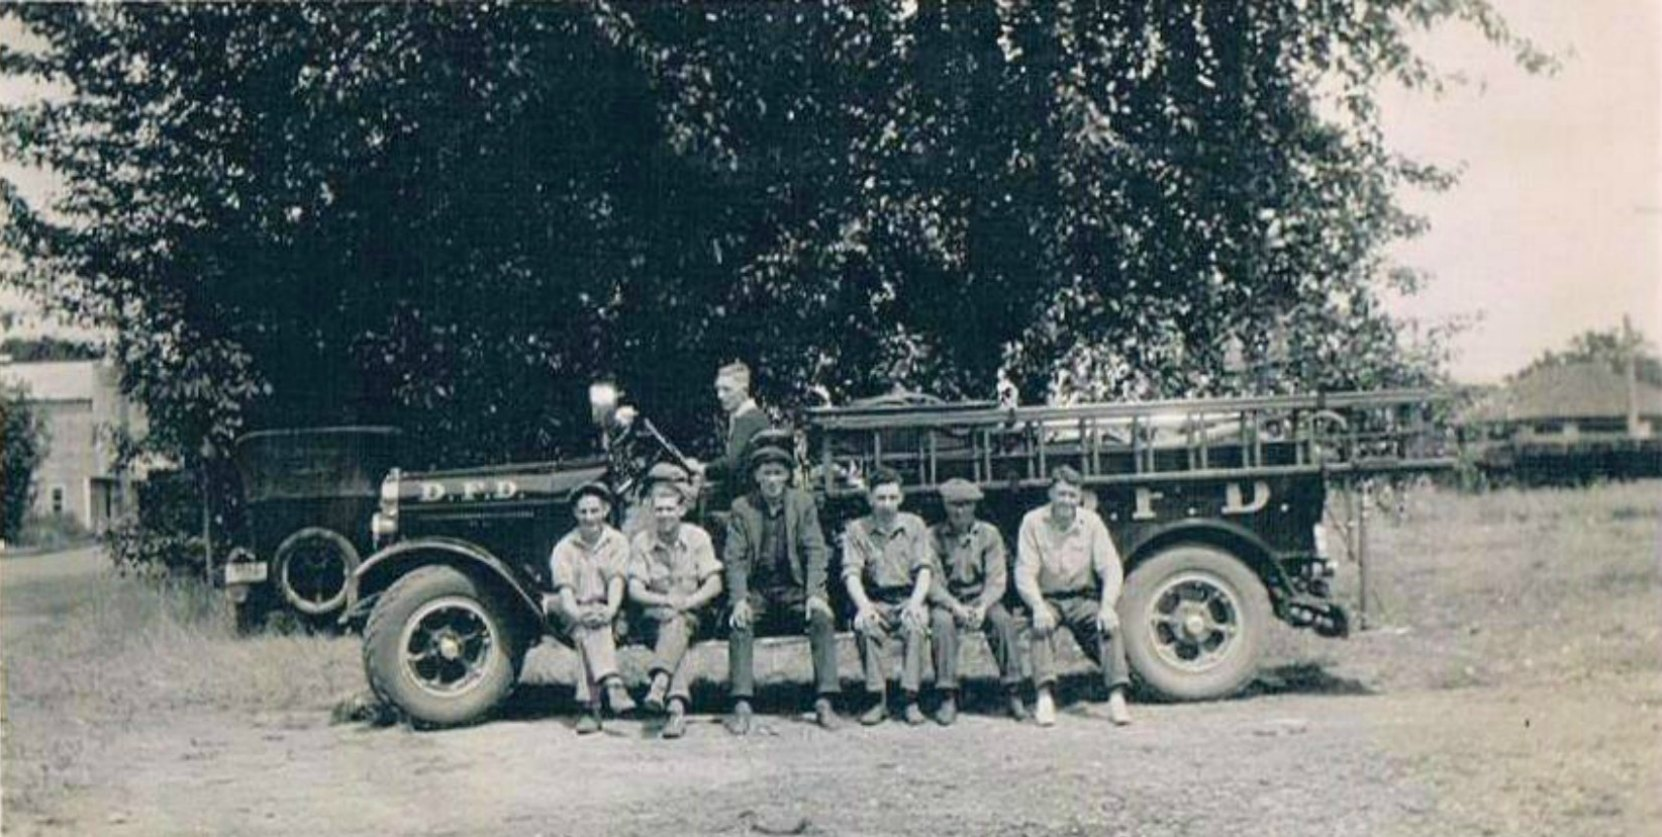 Members of the Duncan Volunteer Fire Department in the summer of 1929. Driver: Cap Townsend. Left to right: Bruce McNichol, Les Talbot, Mr. Wilmot, Josey Evans, Roy Batstone, Daniel R. Hattie, Claude Green (photo courtesy of Sylvia J. Dyer - family collection, used with permission)